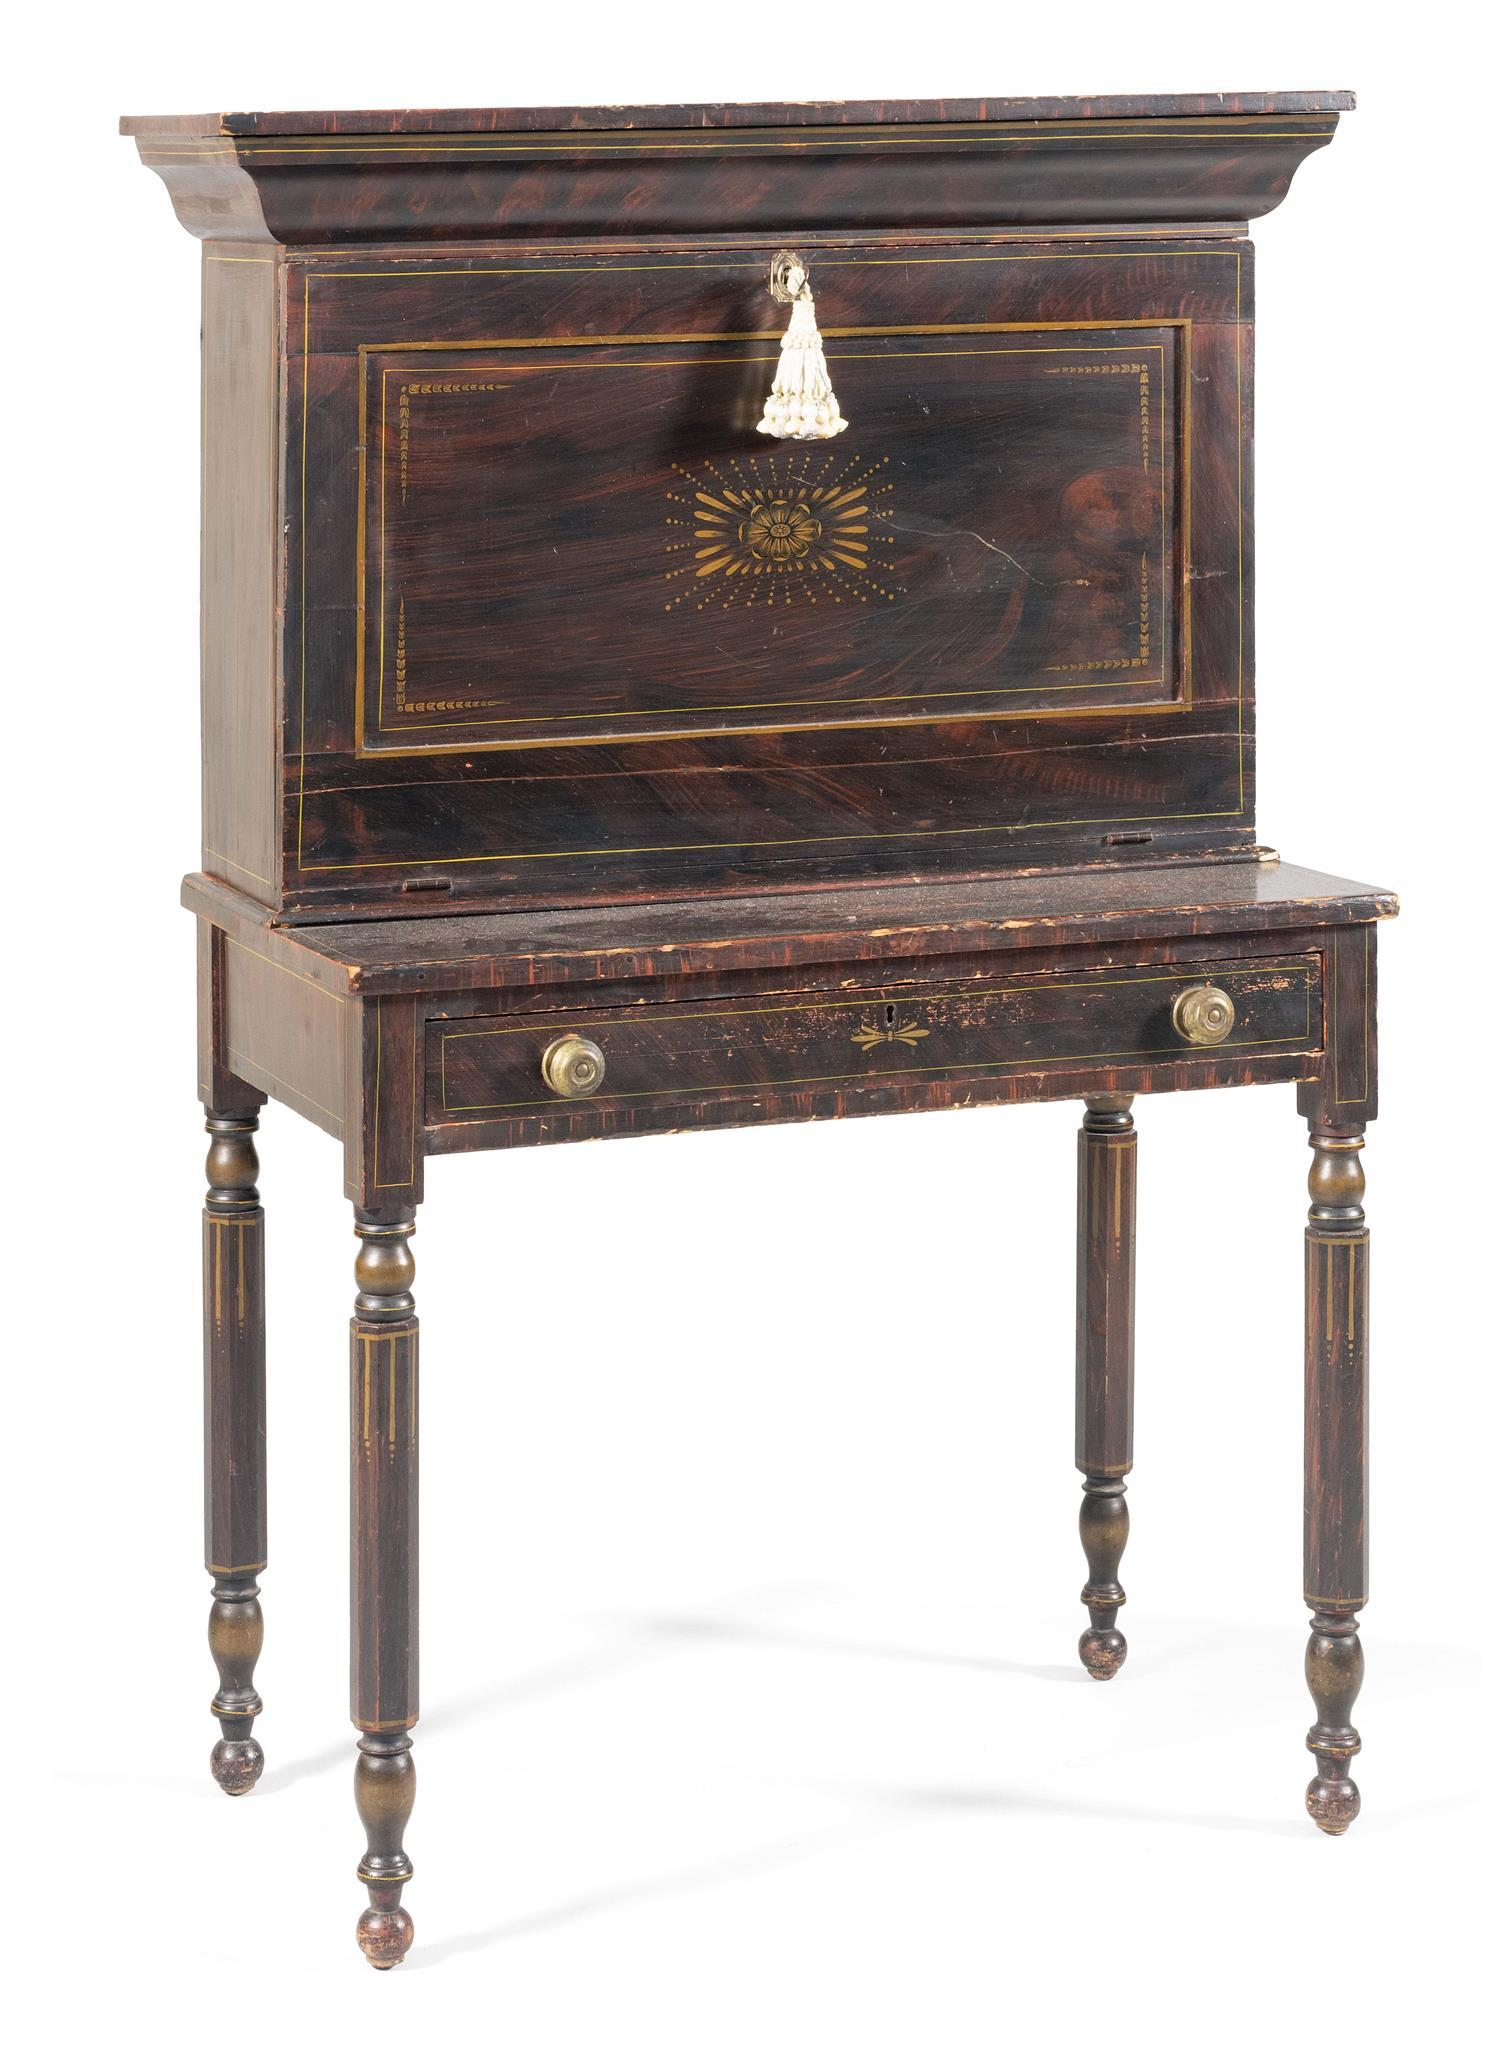 FALL-FRONT SECRETARY Original grain-painted dark brown and red surfaces. Upper case's ogee molded cornice with a top that lifts open..